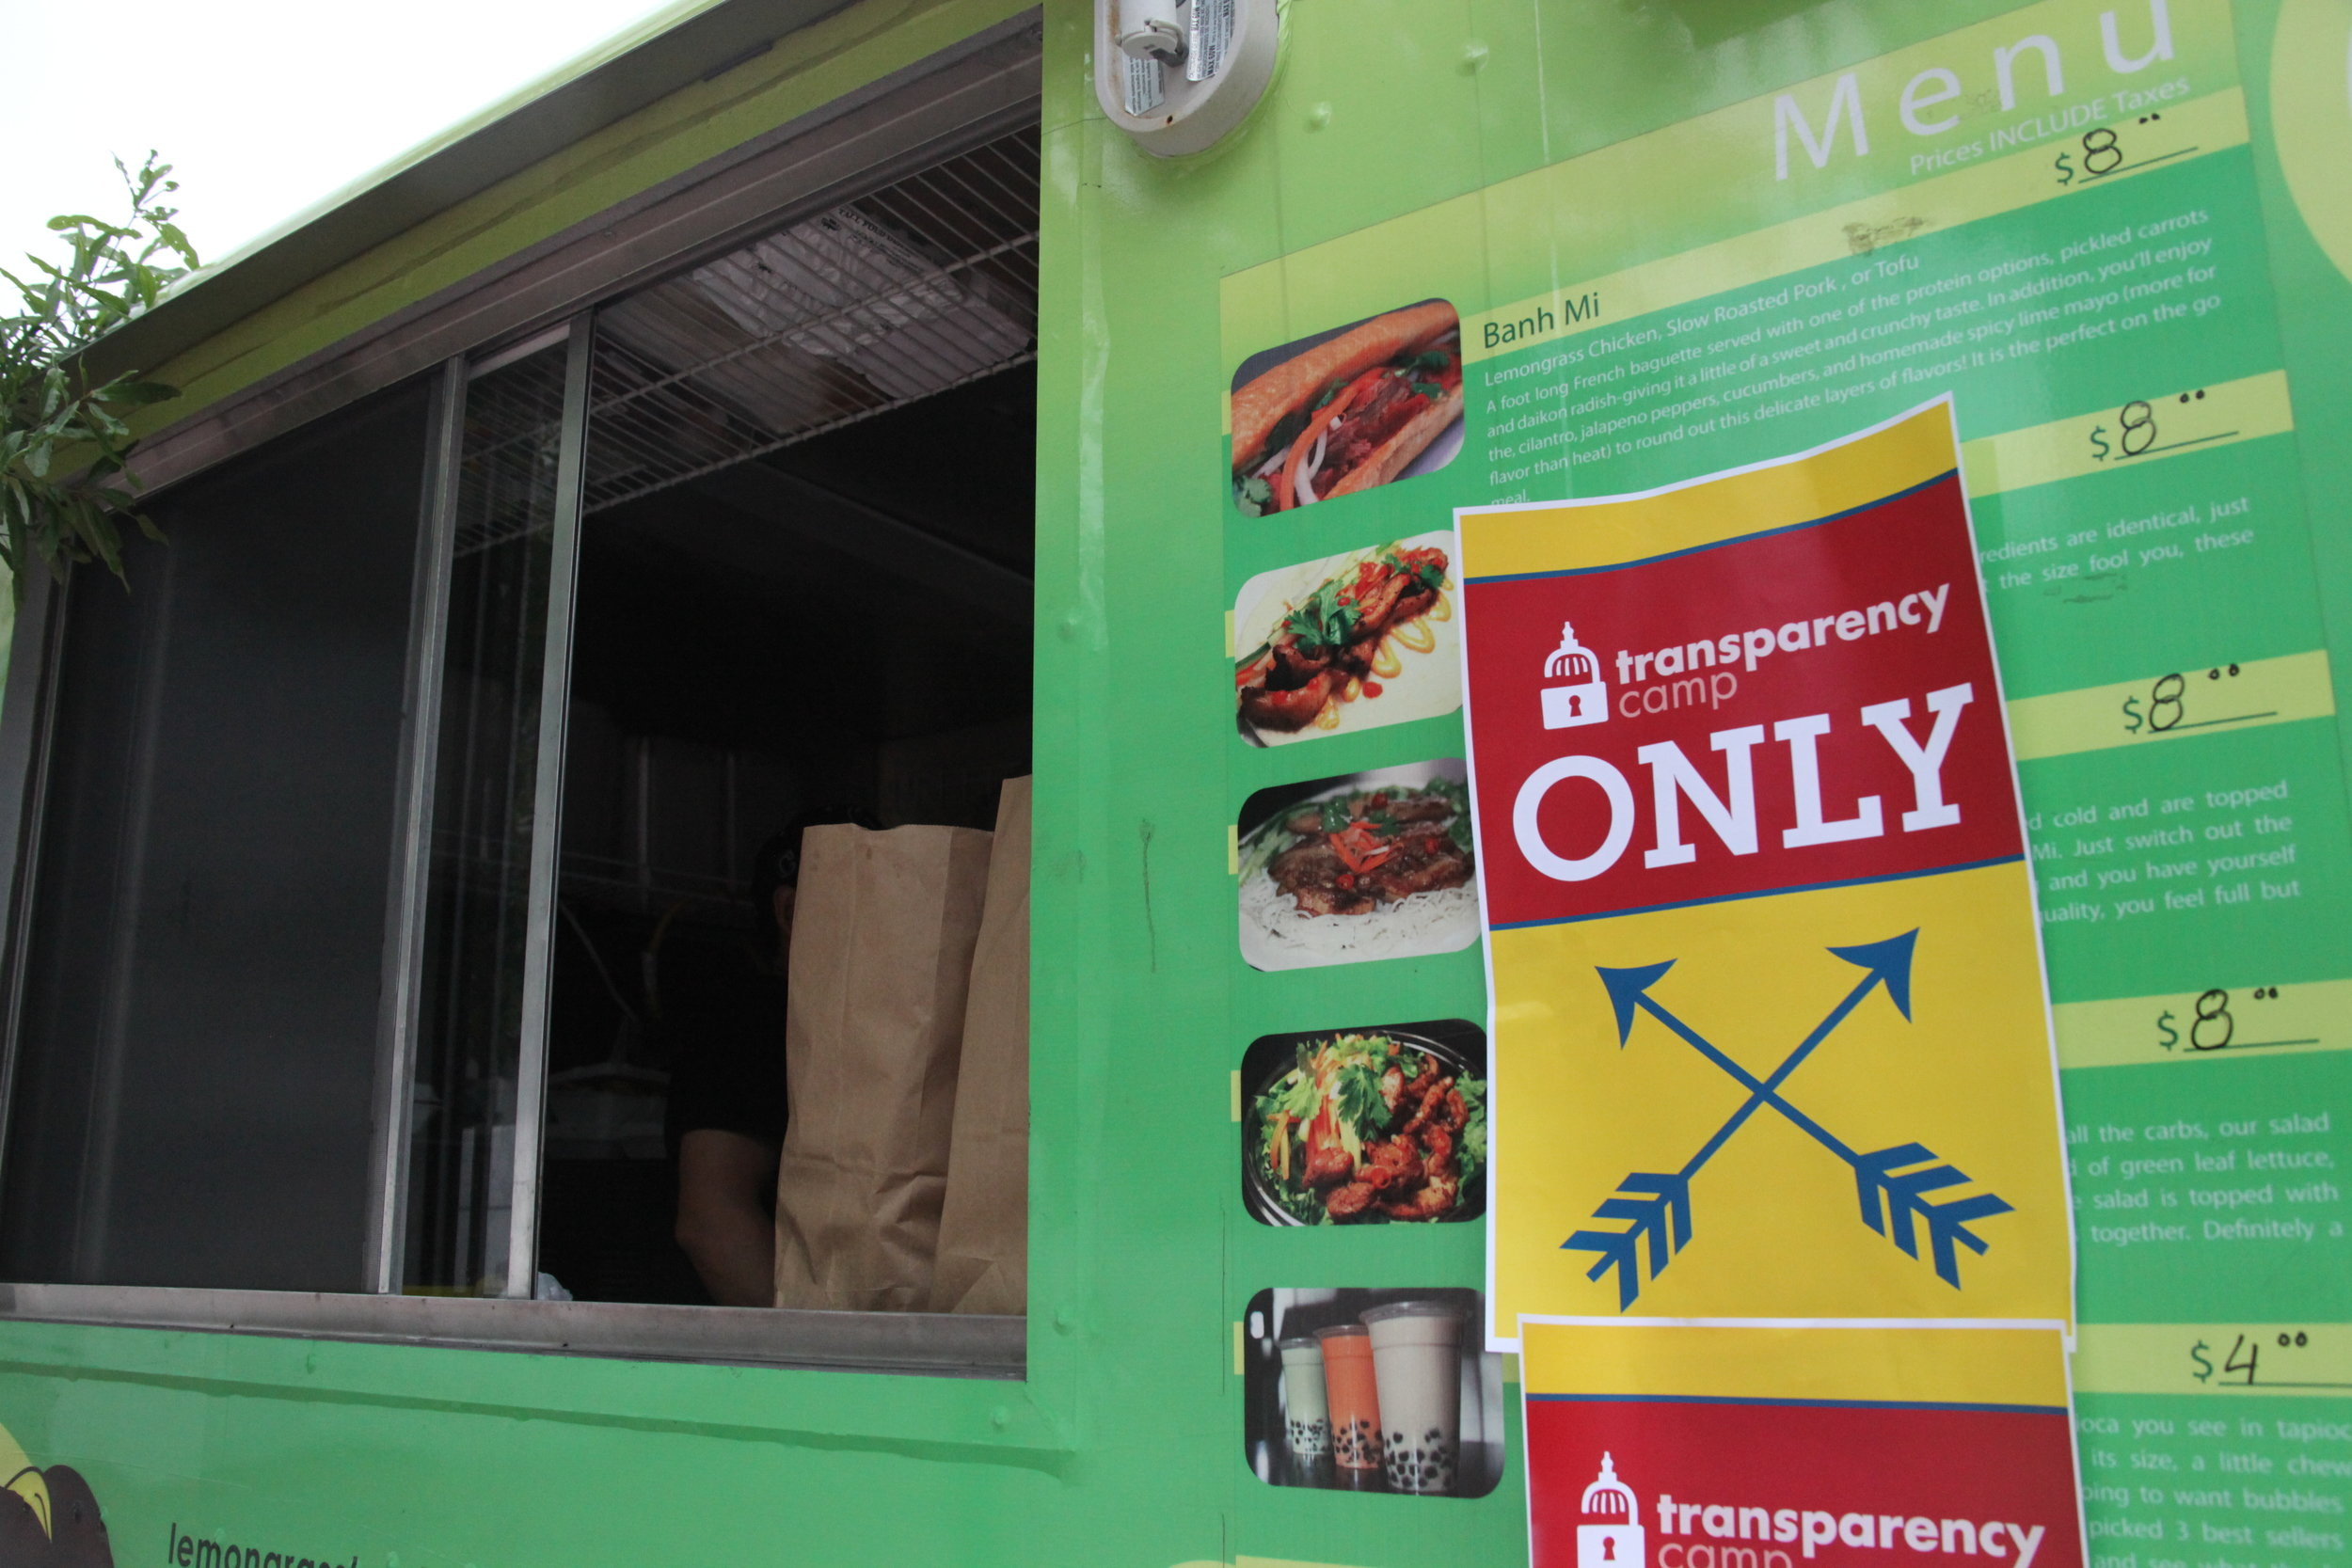 TransparencyCamp only signage on the food truck